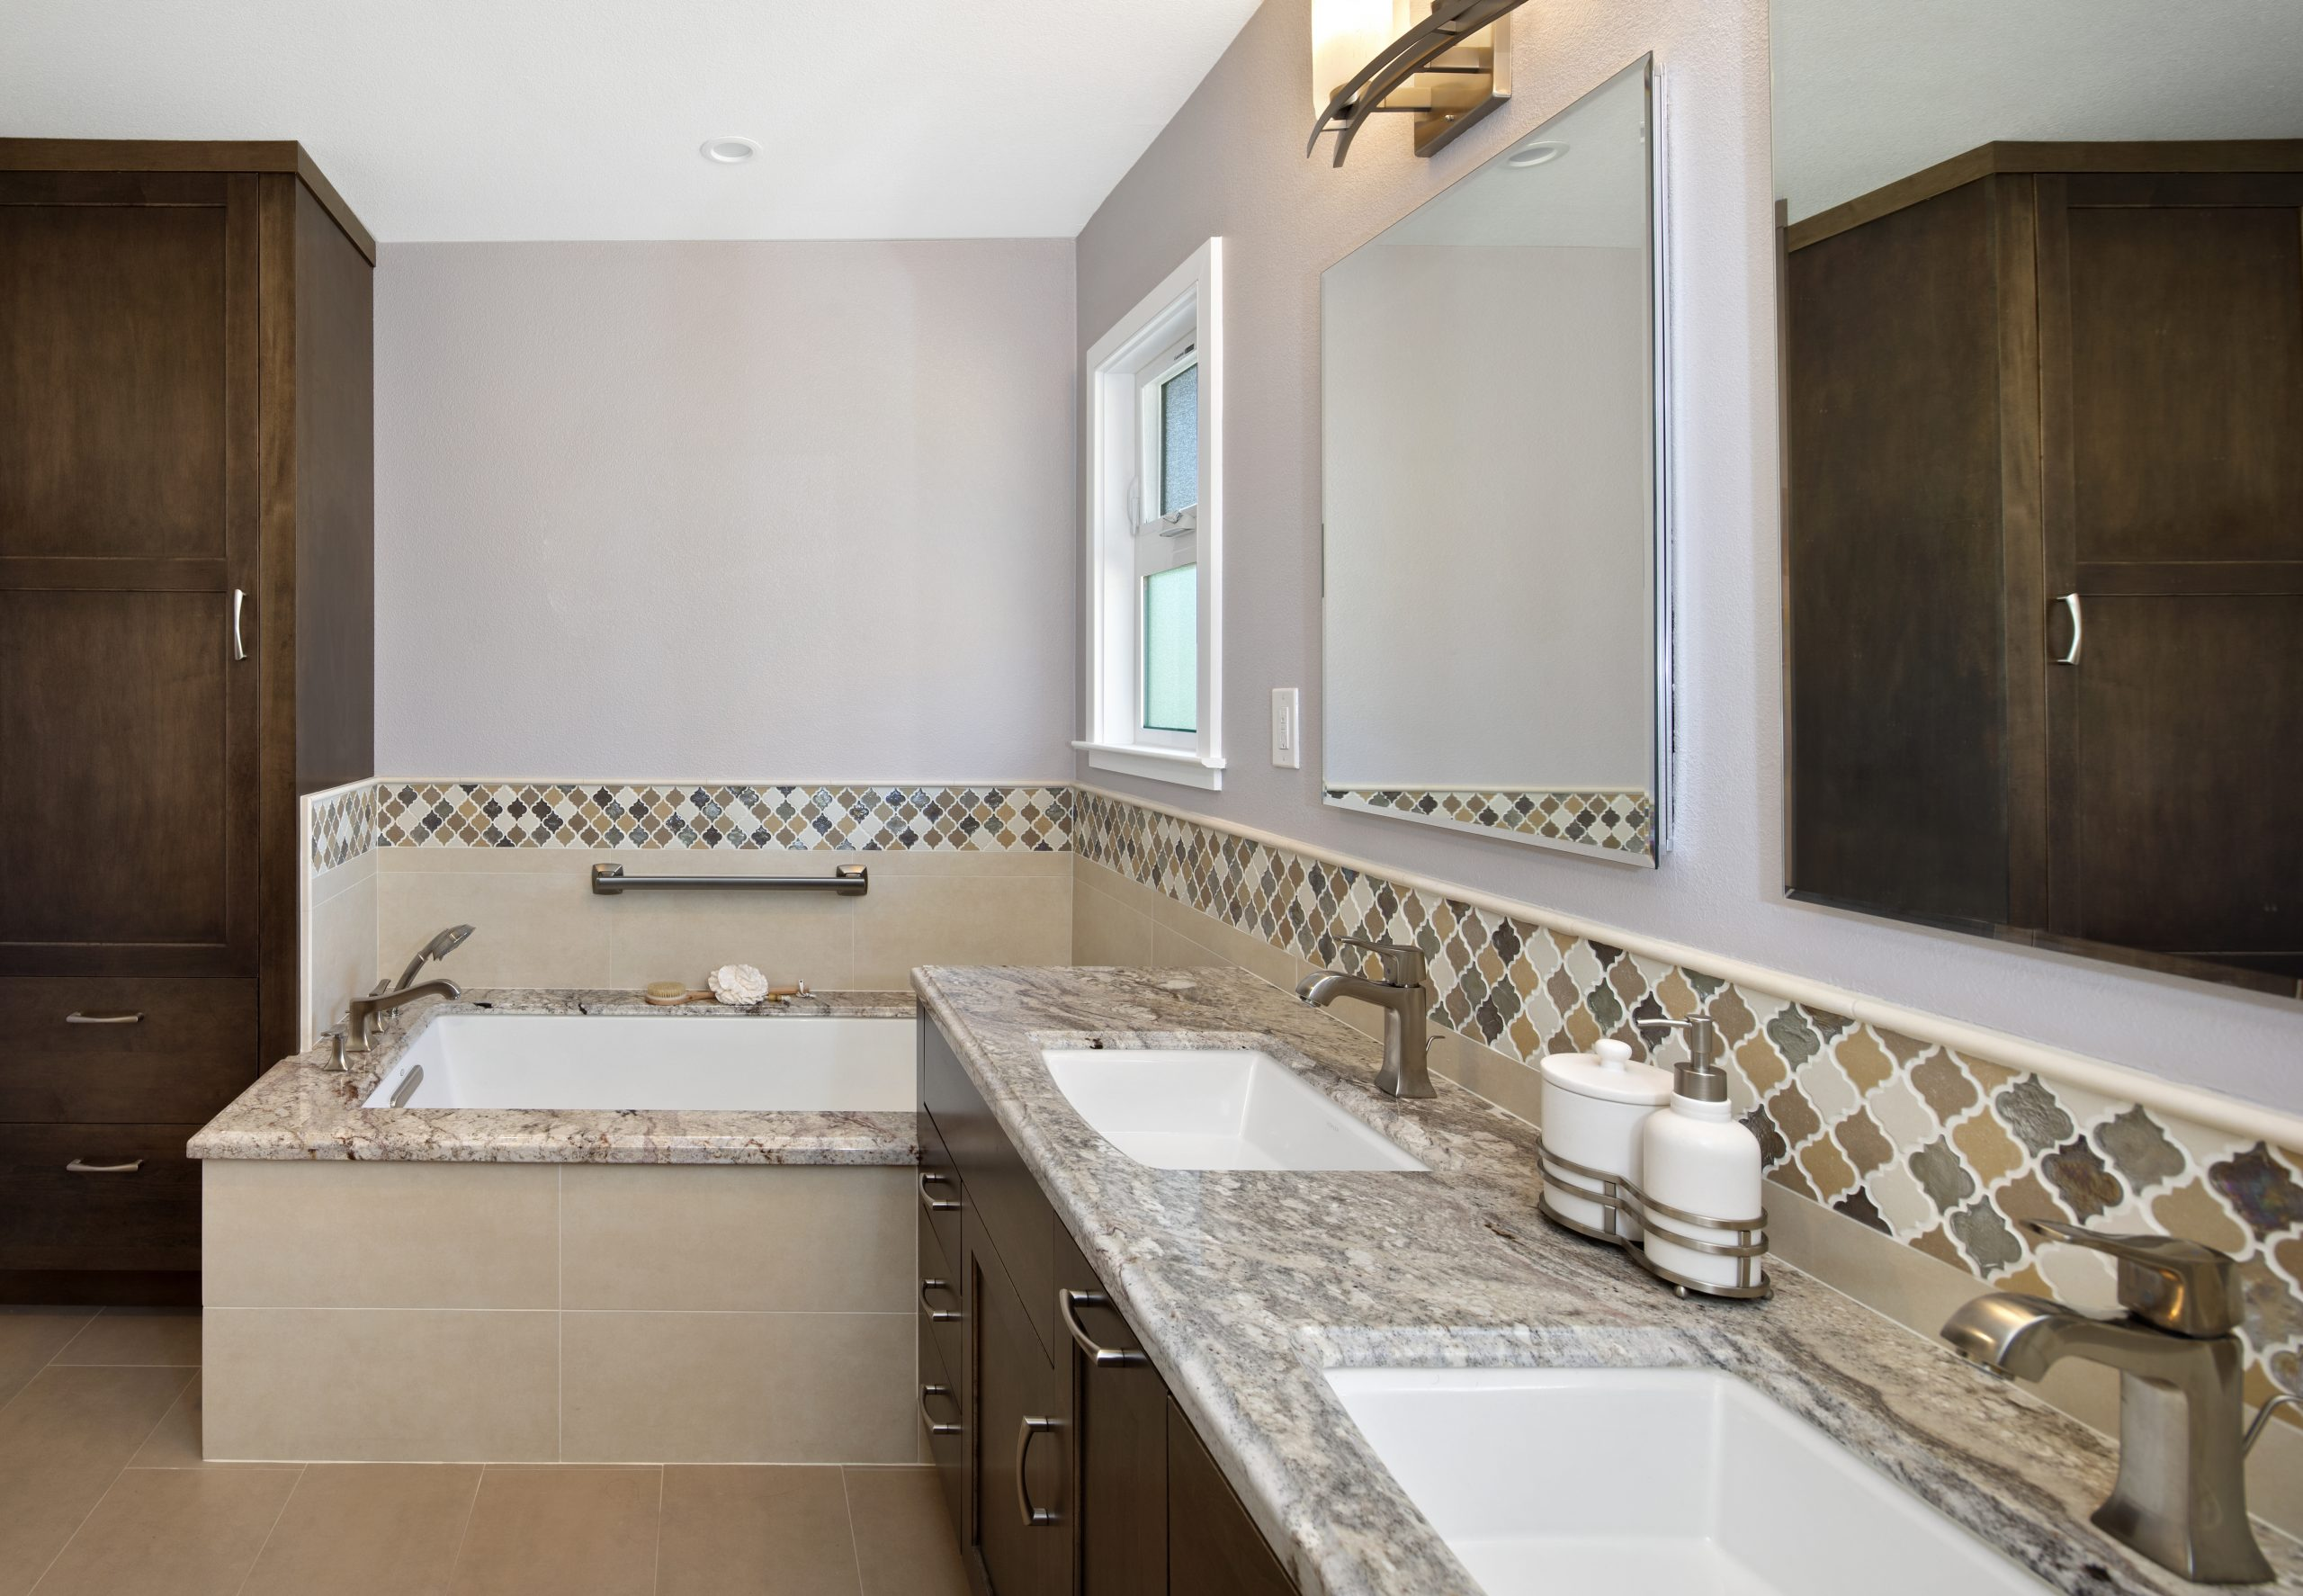 A bathroom with granite counter tops and a granite edged bathtub.